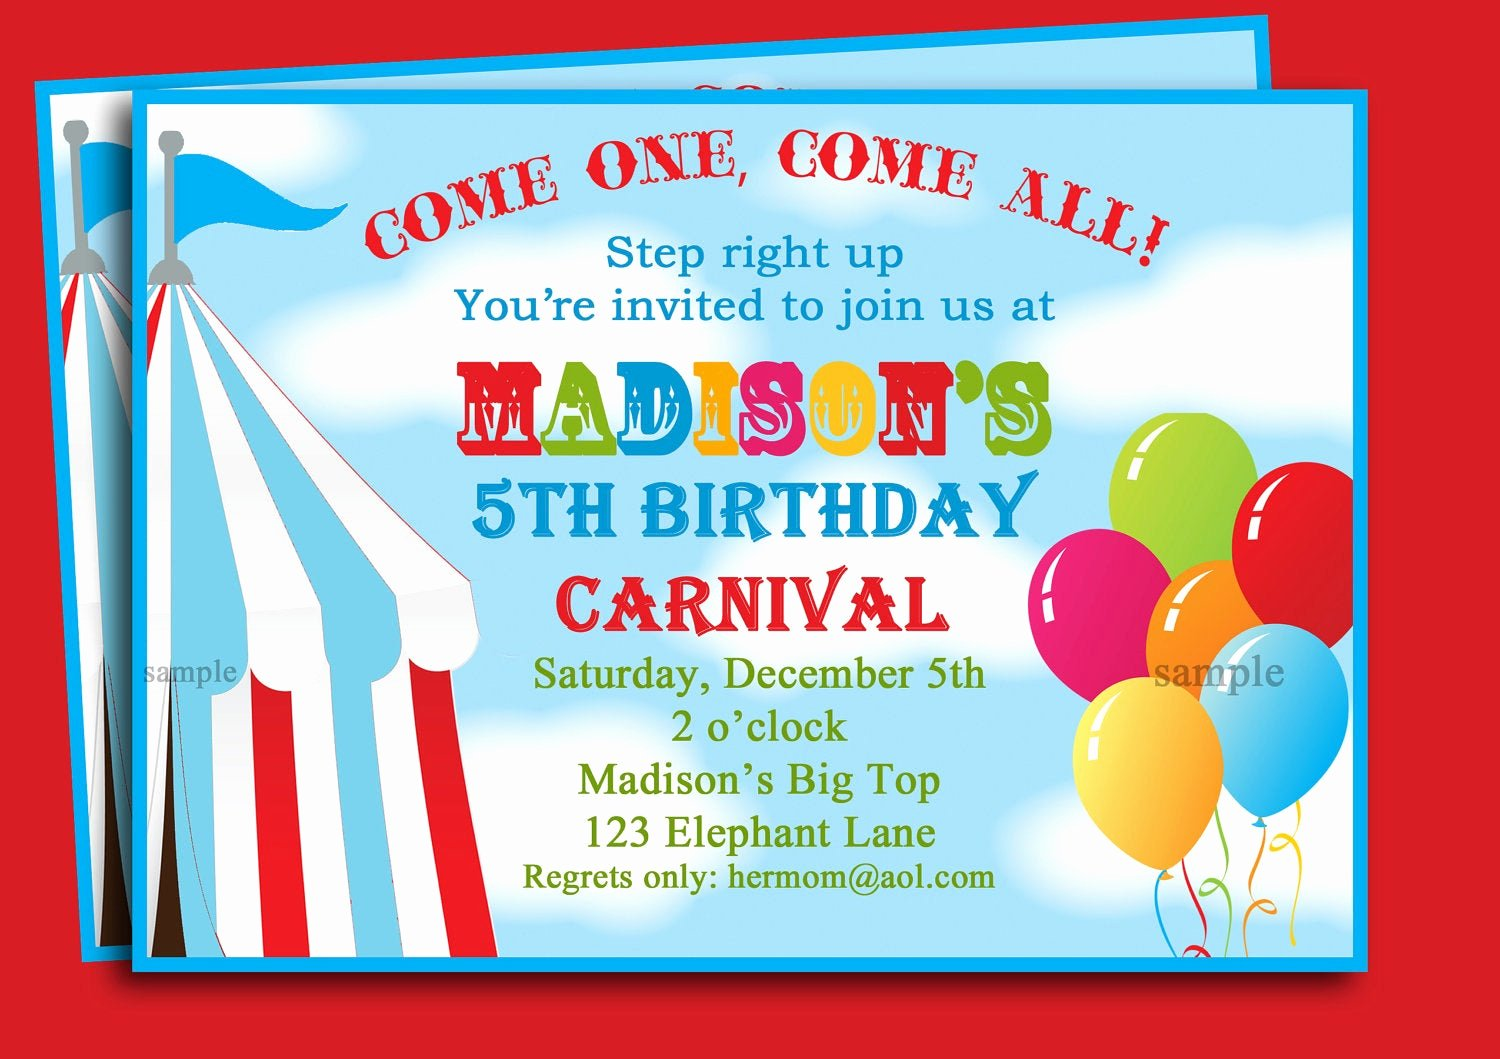 Carnival theme Party Invitations Luxury Circus Carnival Birthday Invitation Printable or Printed with